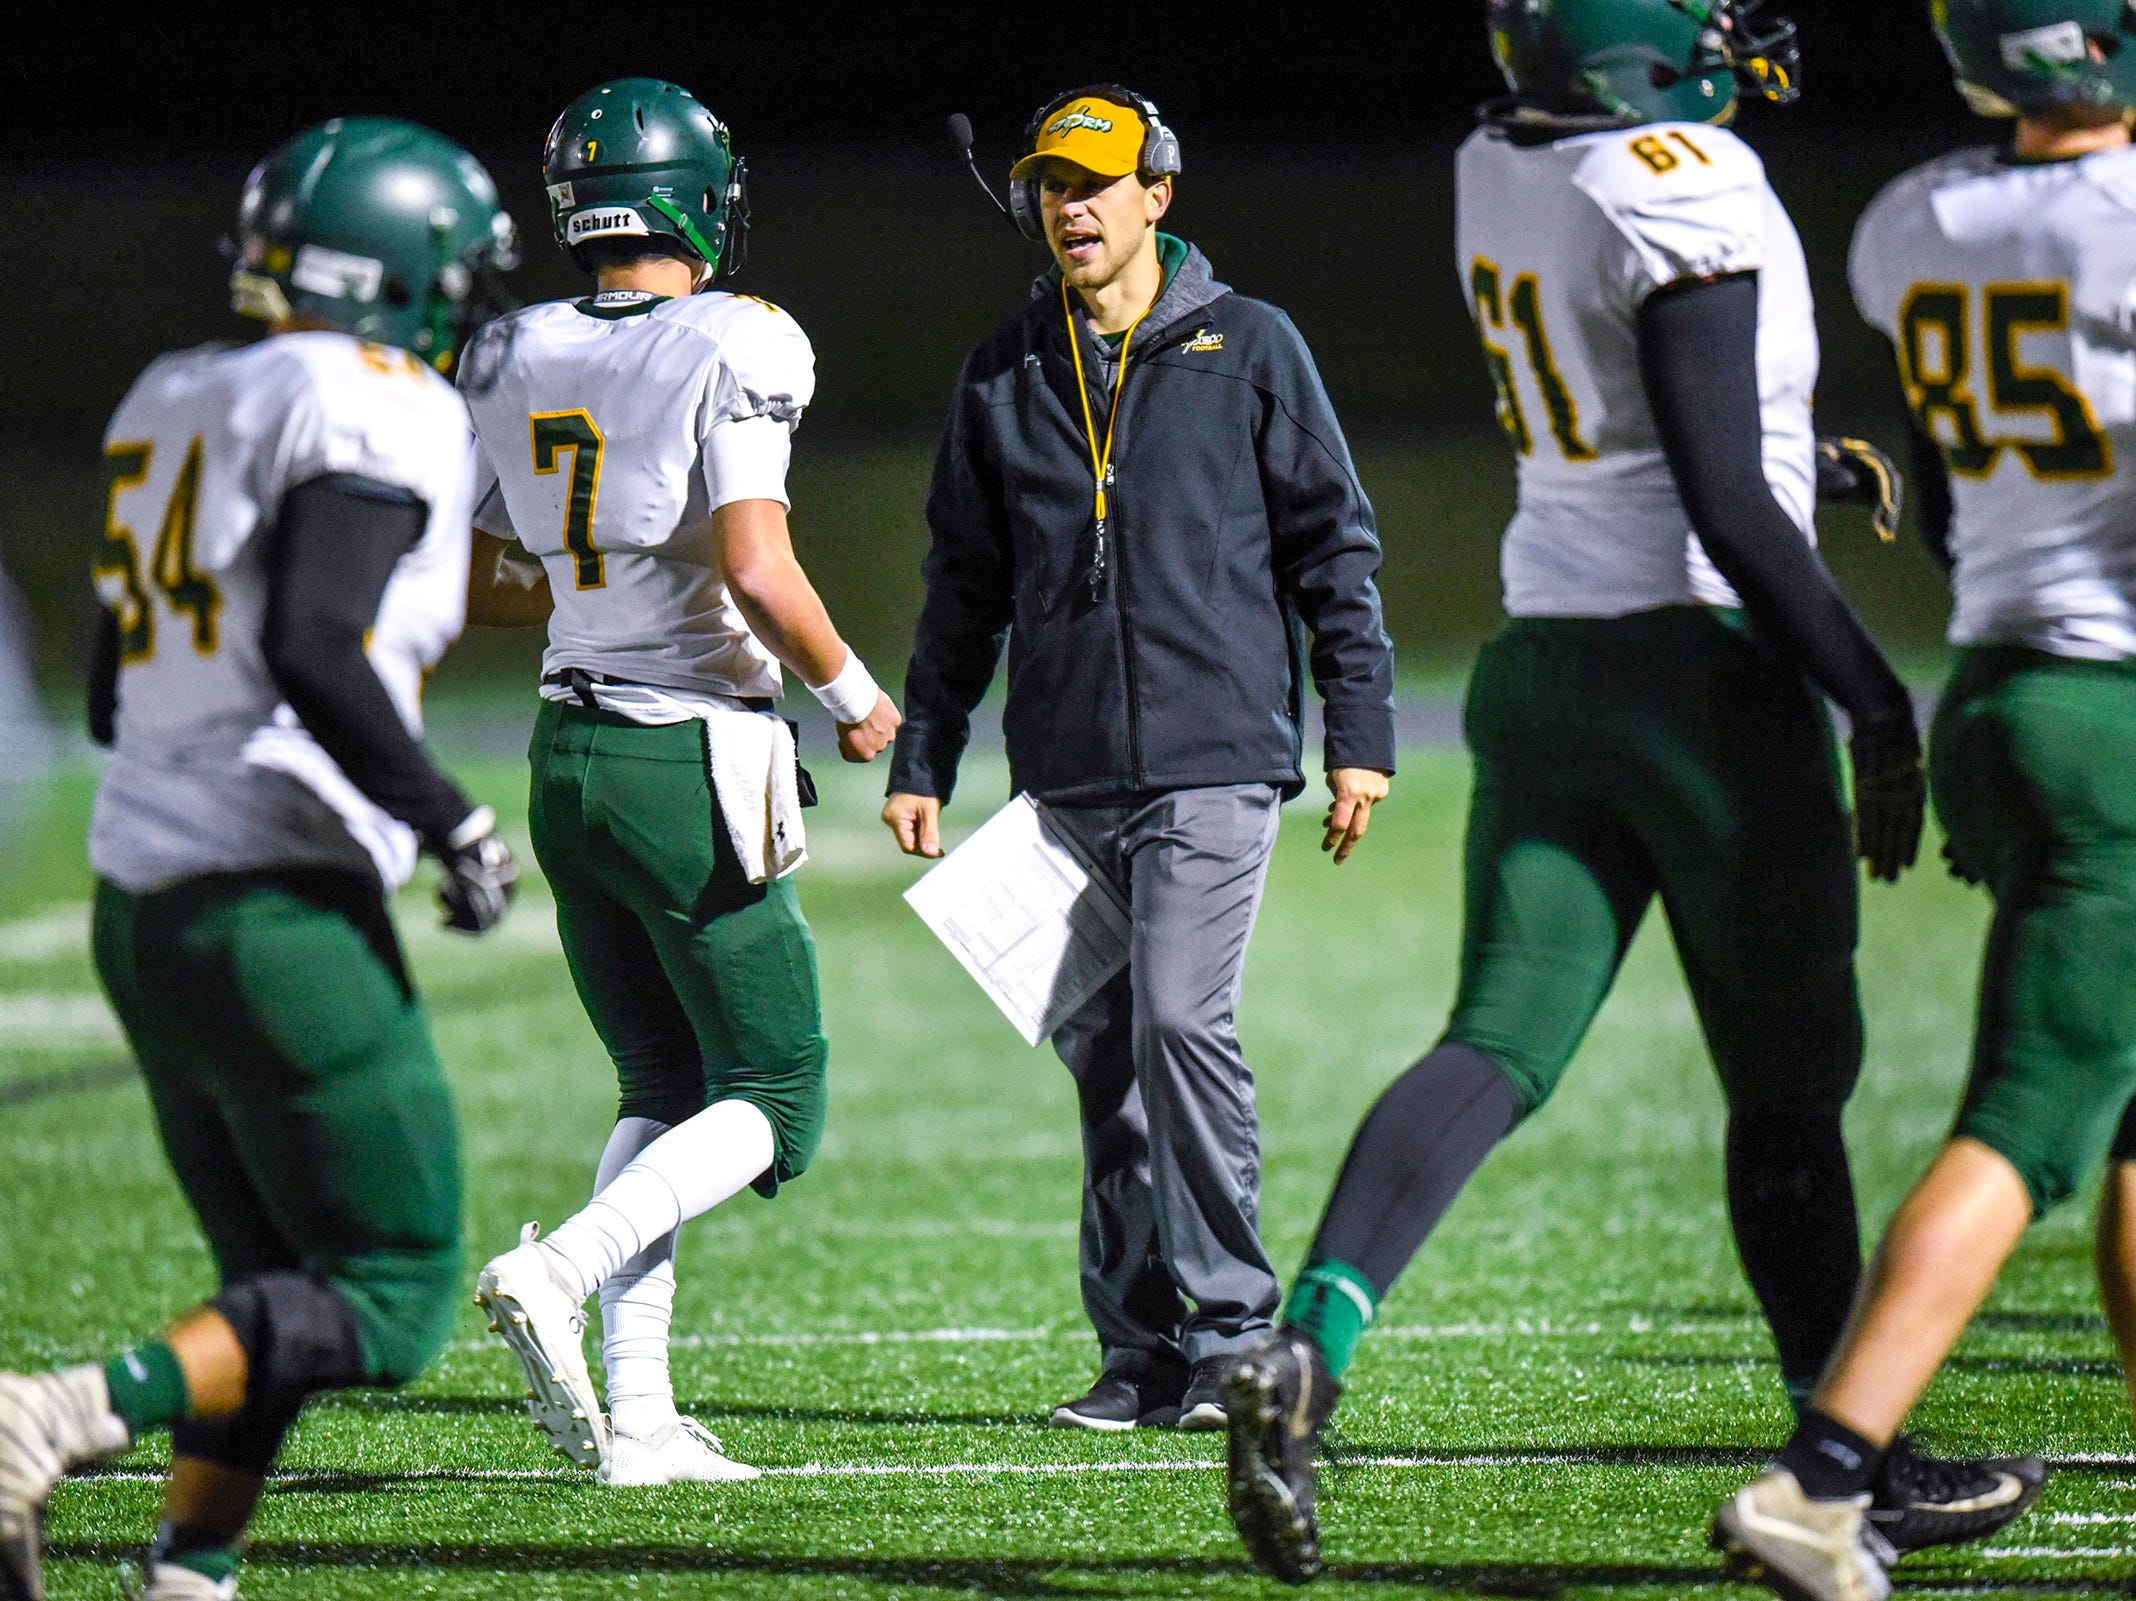 Sauk Rapids head coach Phillip Klaphake talks with players as they come off the field during the first half Friday, Nov. 2, in the Section 6-5A championship at Buffalo High School.